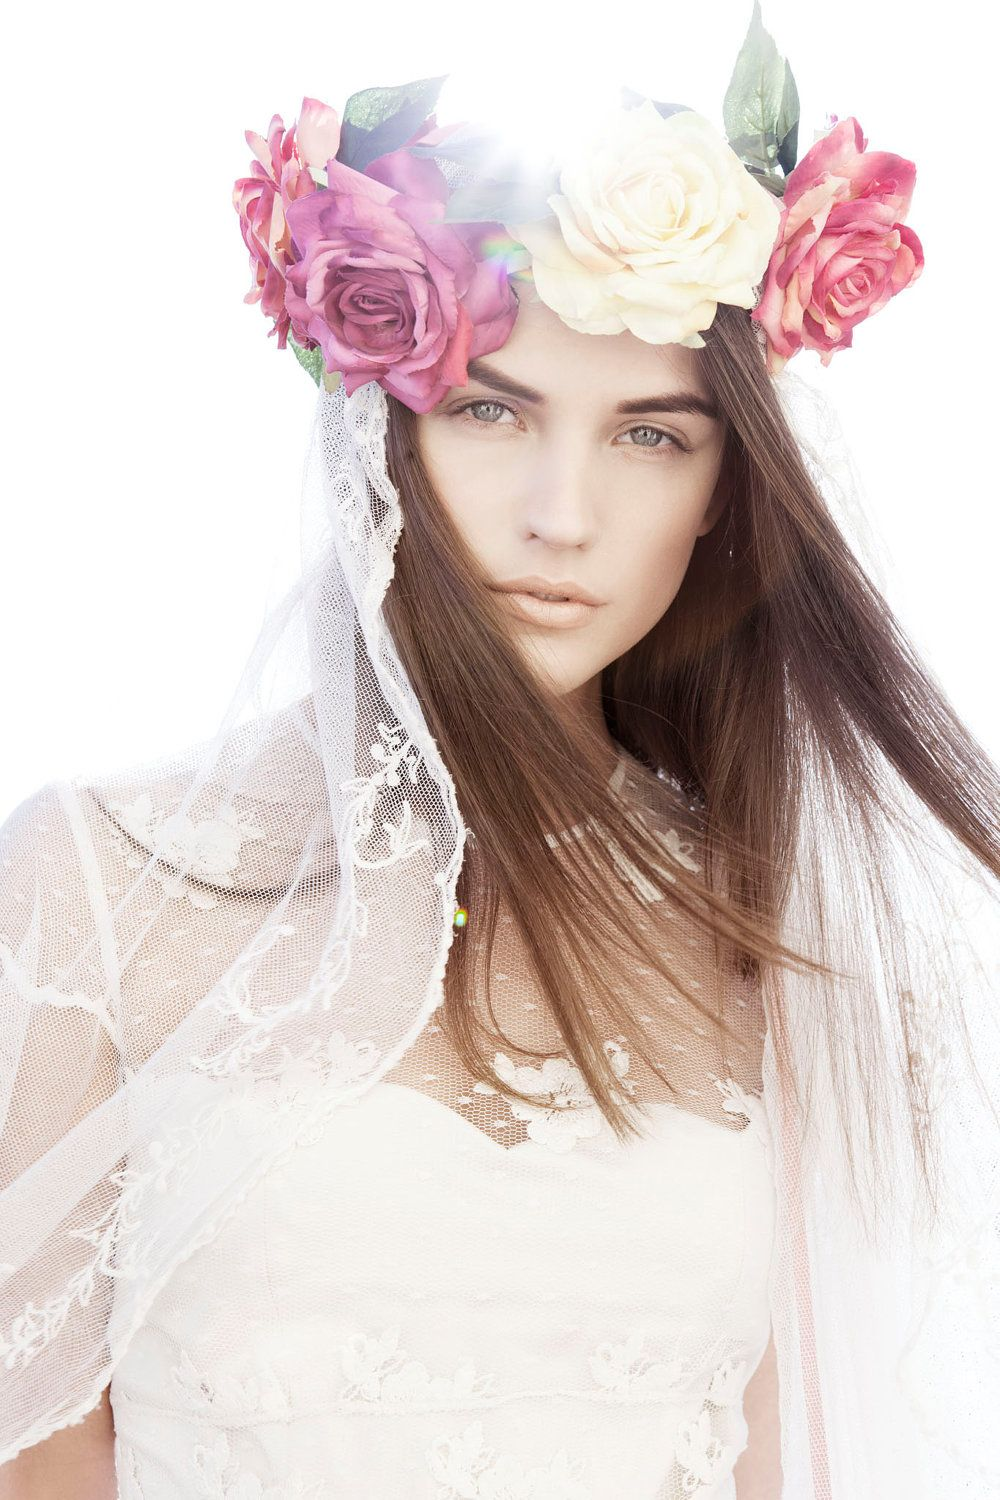 Flower Crown Hairstyle Hairdo Romantic Natural Fairy Flower